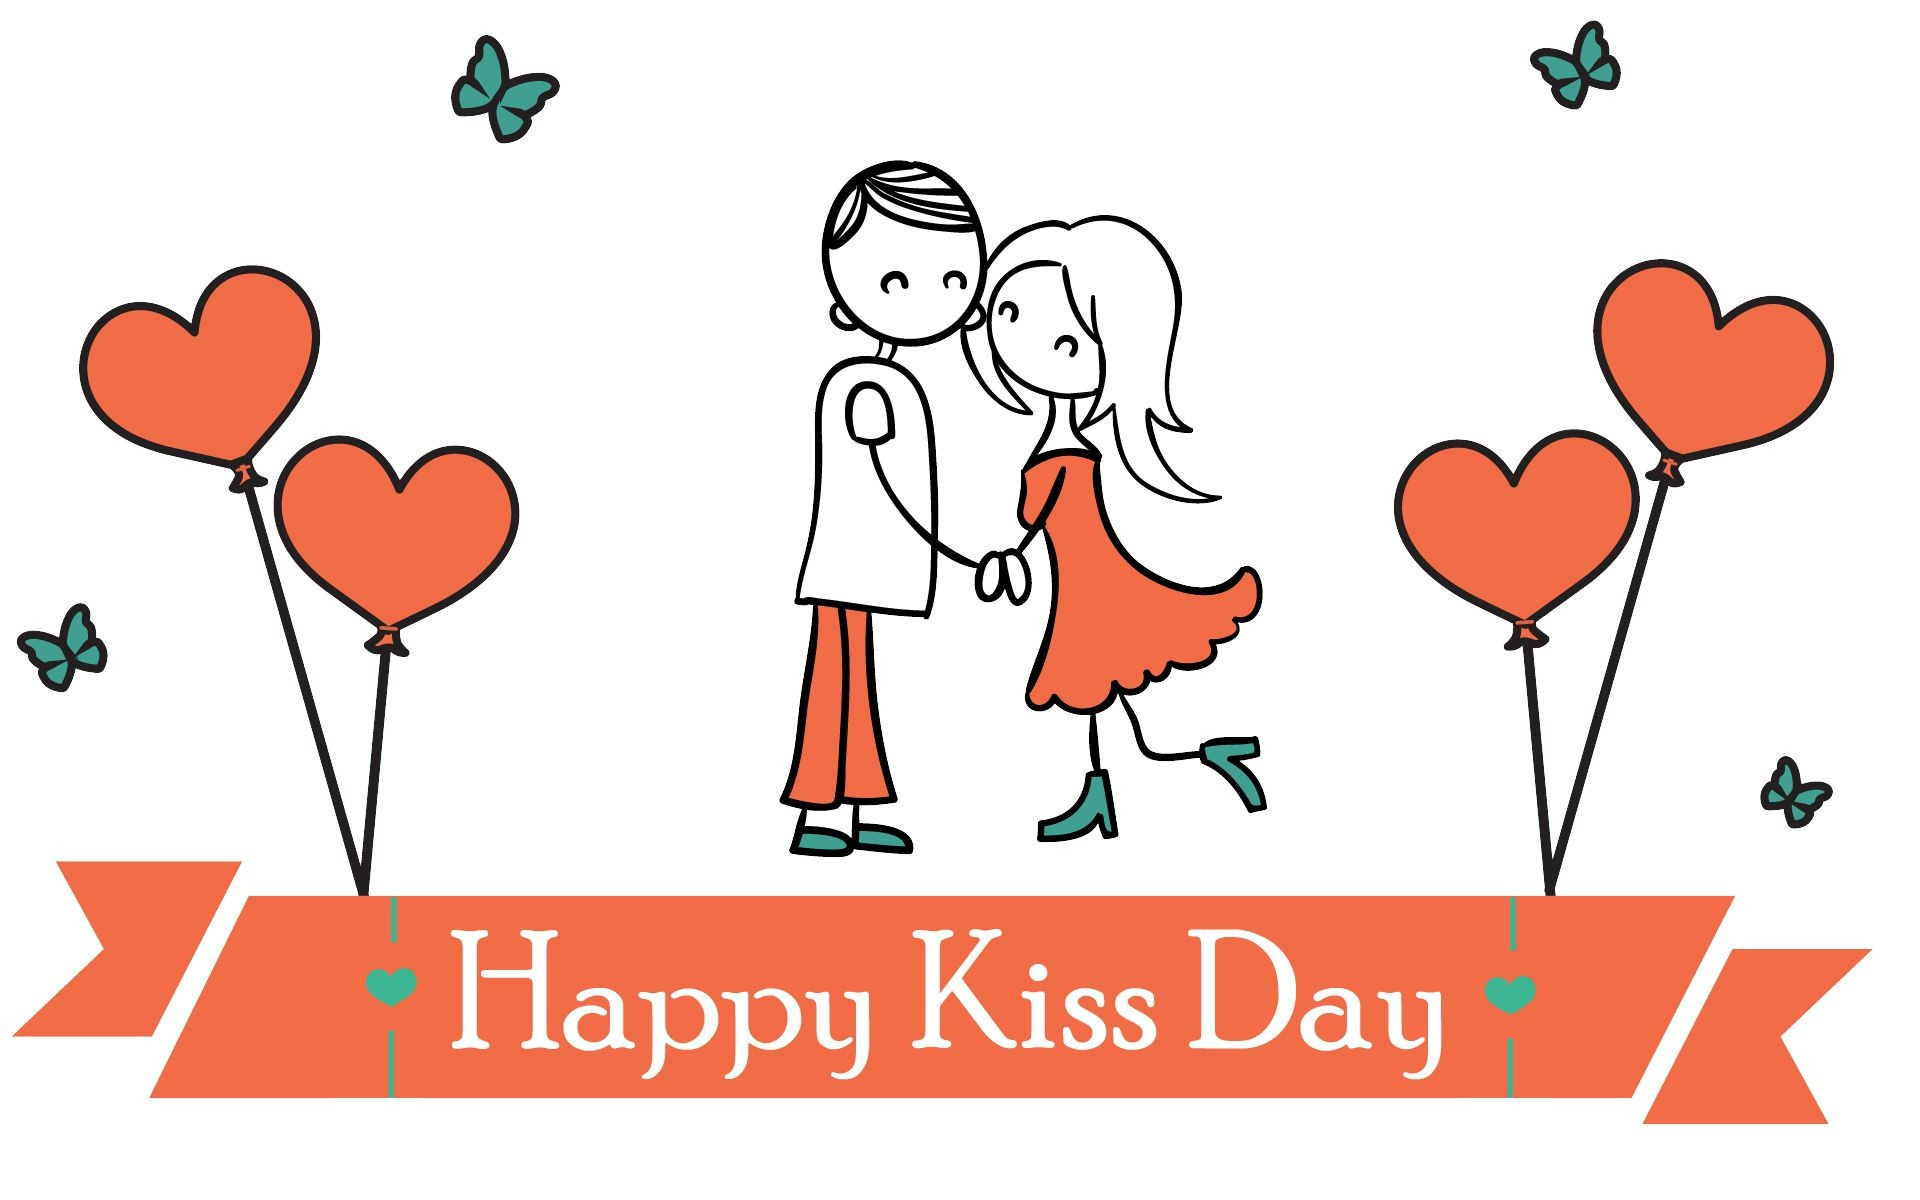 1920x1200 Download Kiss Wallpaper, Kiss Day E-Greetings, Friendship Ecards, Happy  Kiss Day